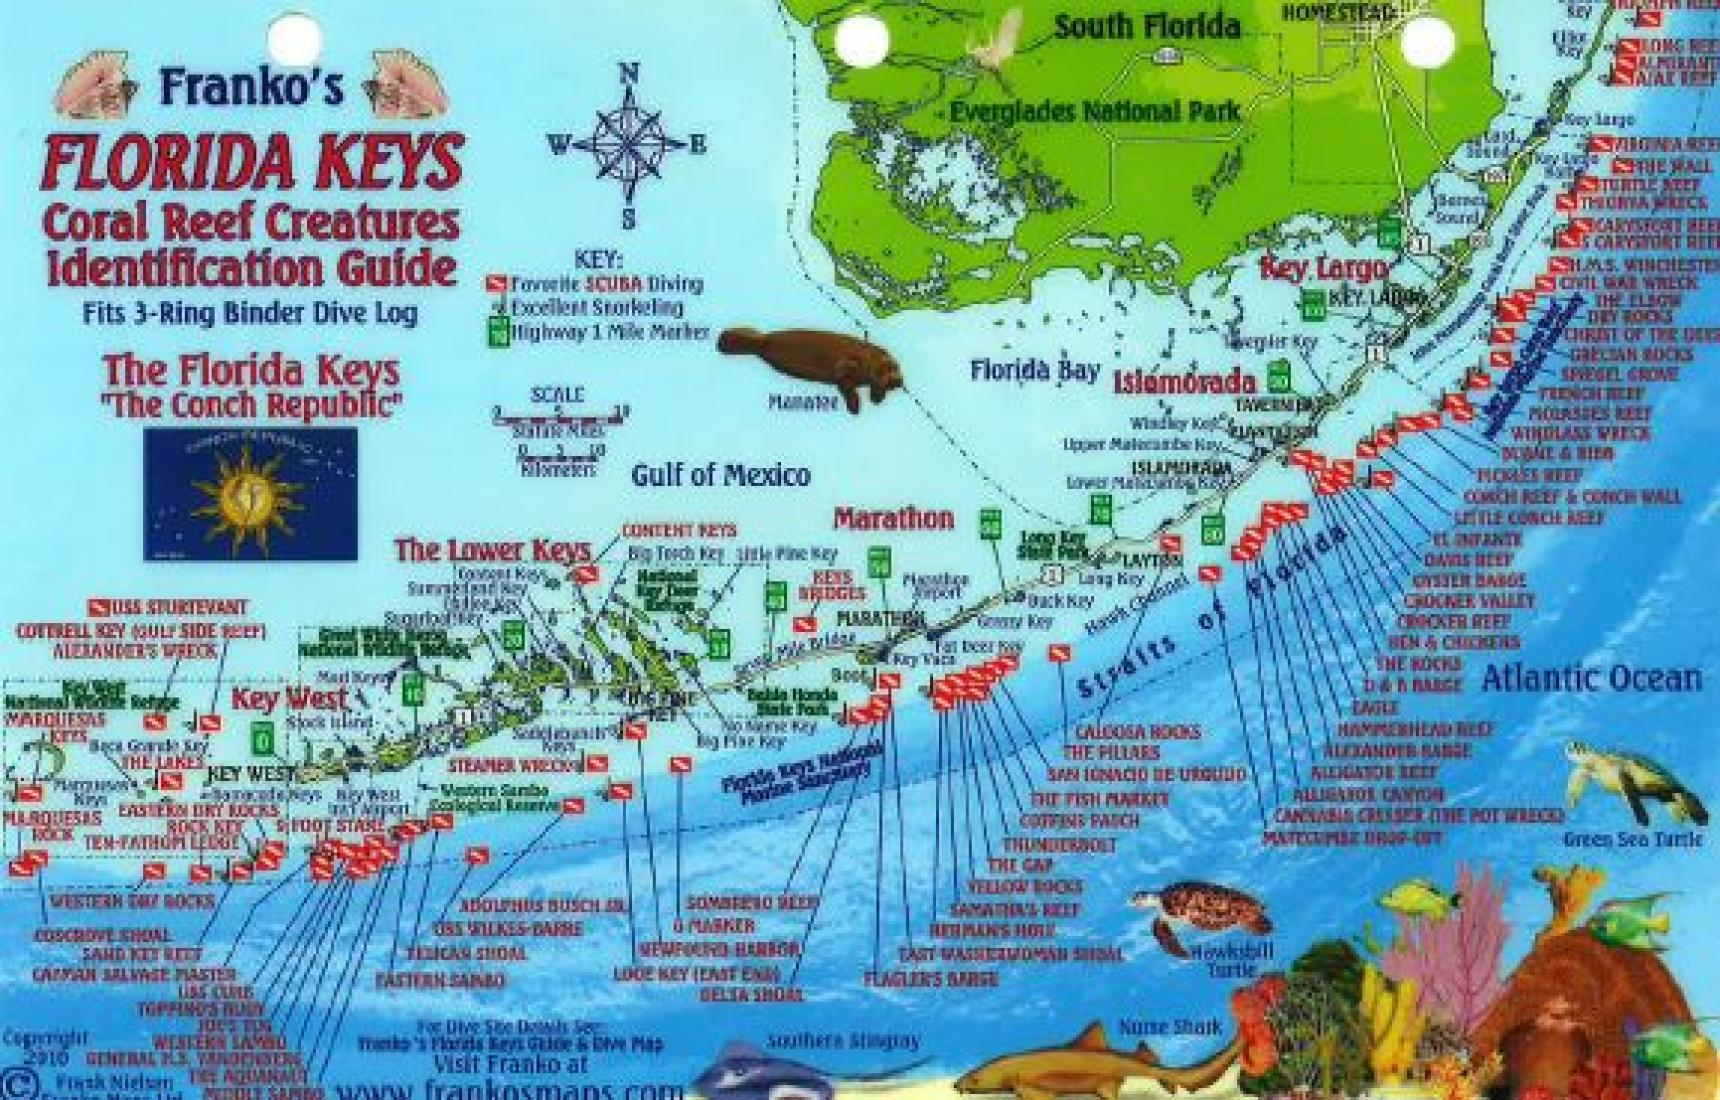 Florida Keys Maps.Florida Keys Fish Id Card By Frankos Maps Ltd